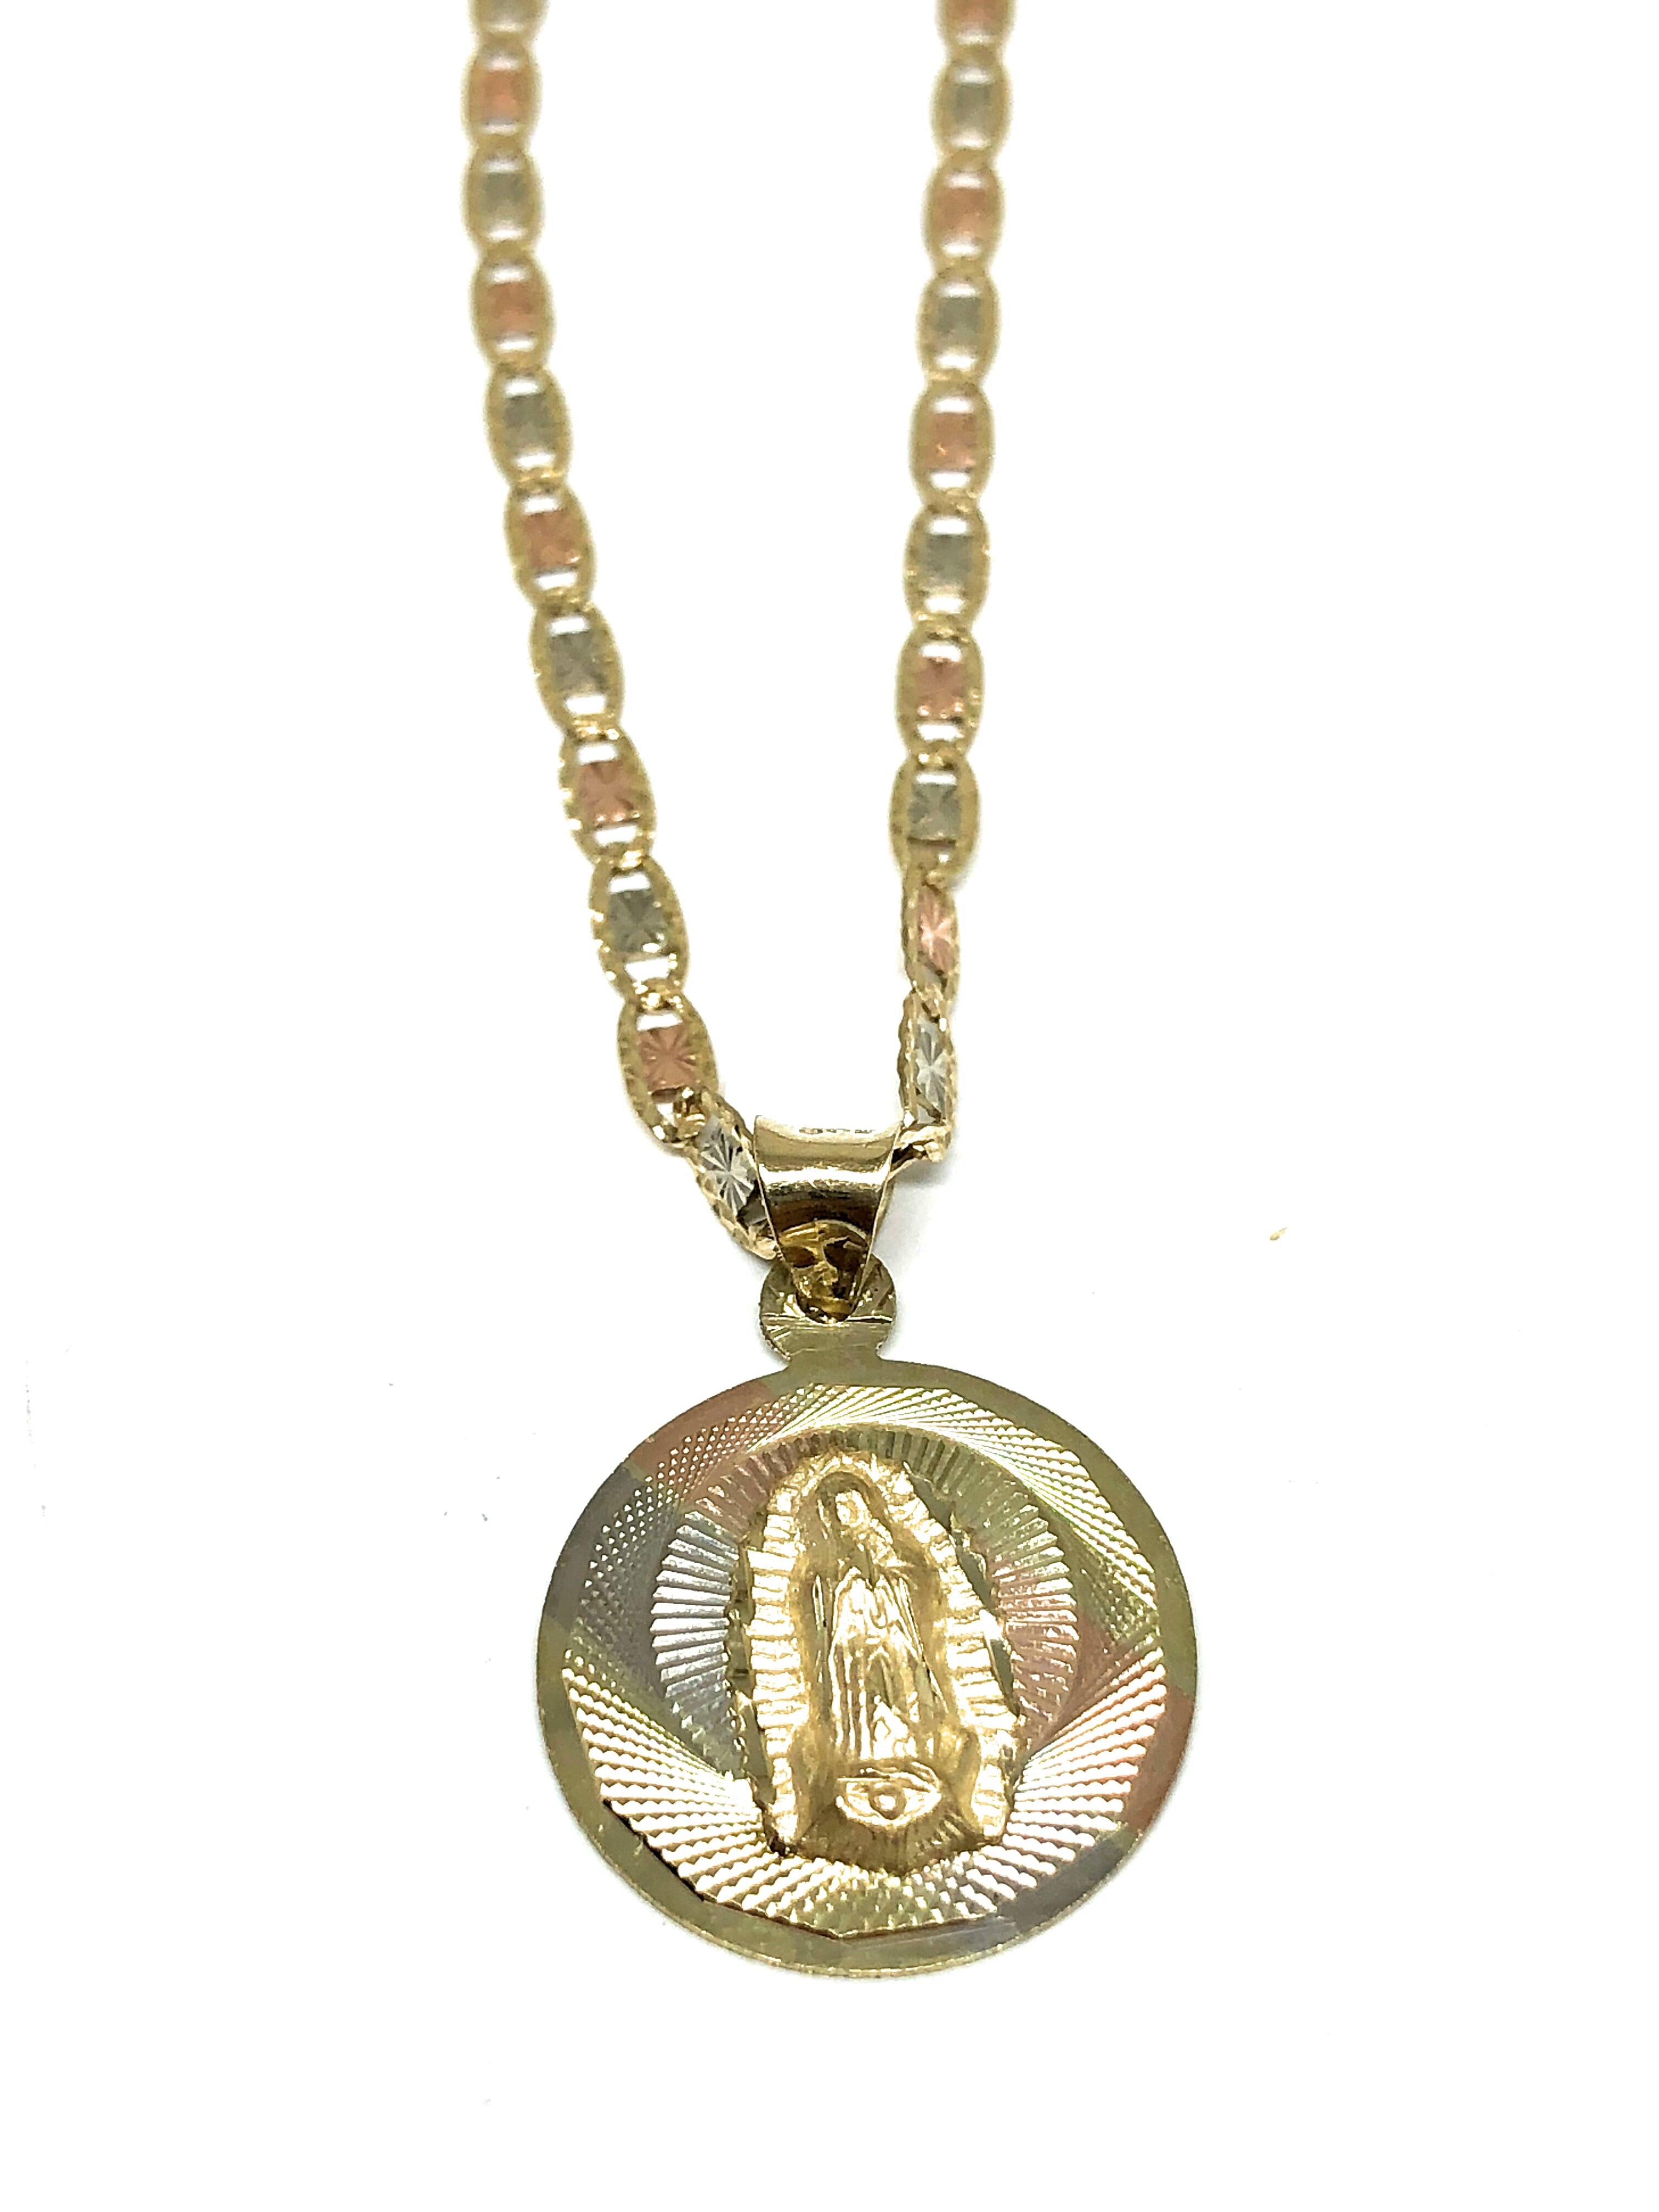 10k Solid Gold Tri-Color Virrgin Mary Pendant Necklace Virrgen Gaudalupe Valentina Chain (SM,MED)